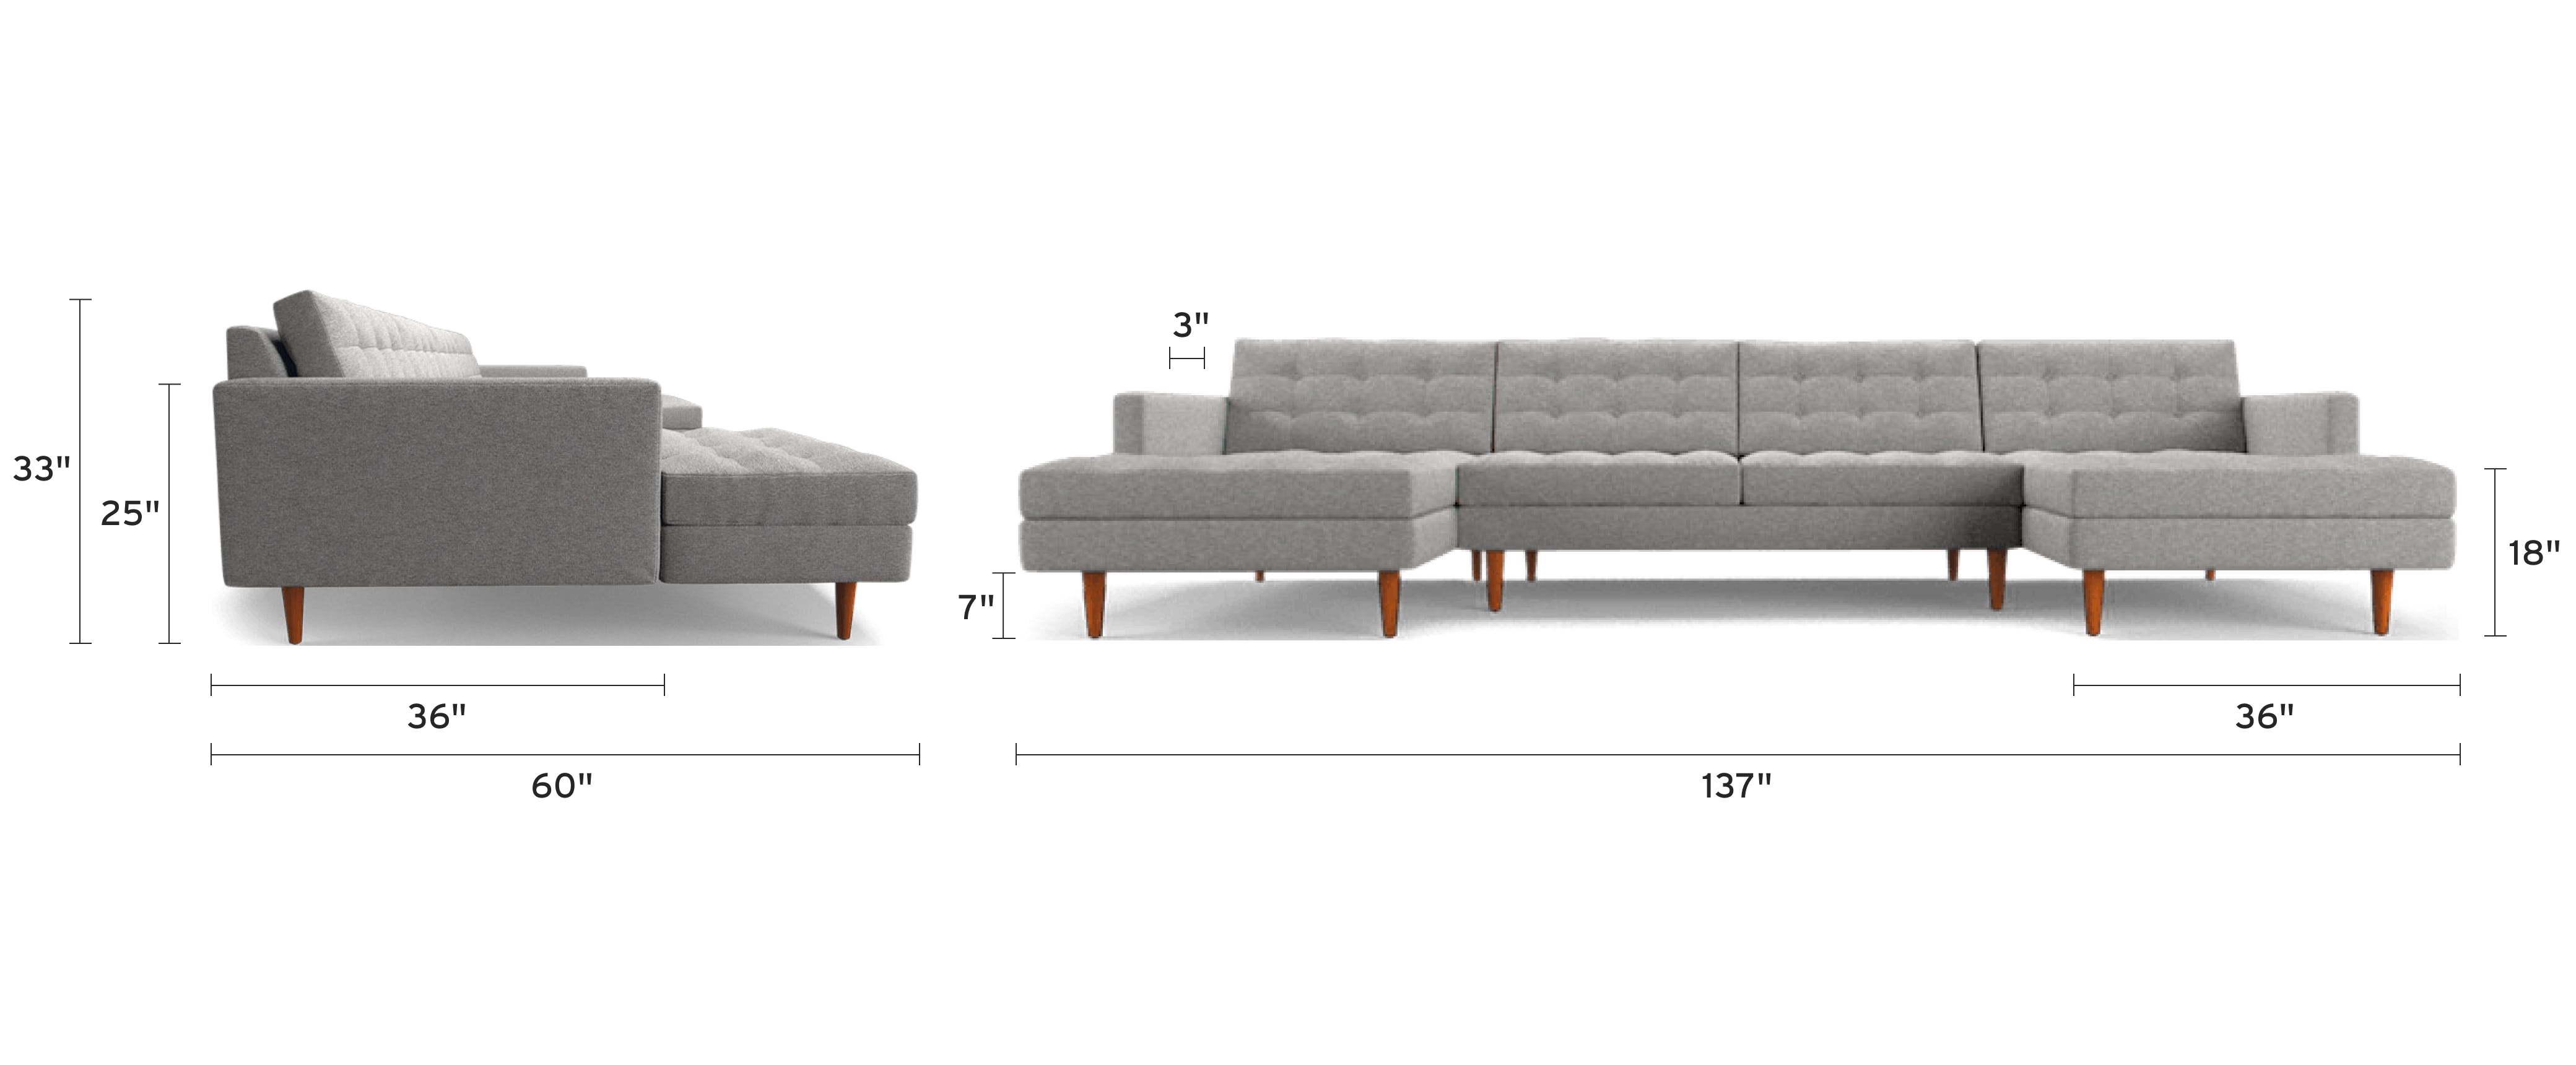 eliot chaise sectional piece) dimensional image